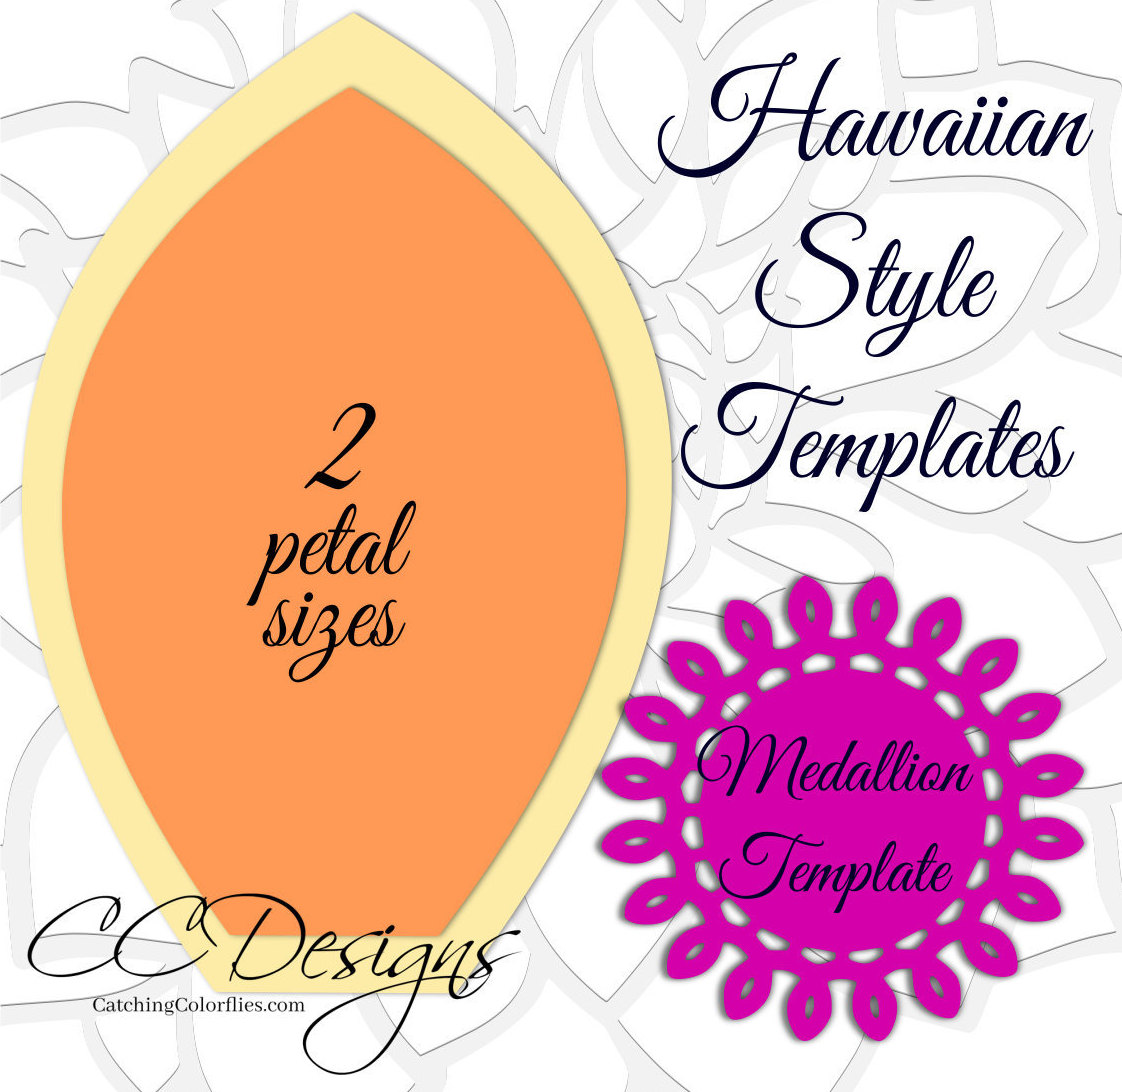 Giant hawaiian paper flower templates tutorial paper flower svg this is a digital file izmirmasajfo Gallery